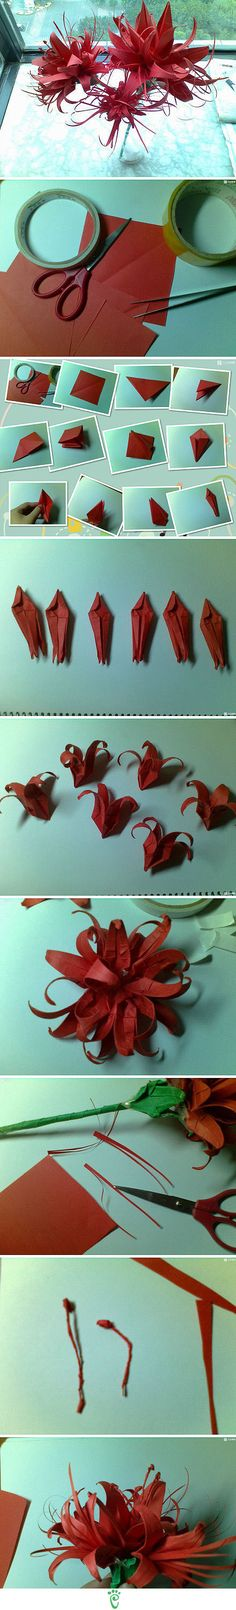 DIY Paper Flower Pictures, Photos, and Images for Facebook, Tumblr, Pinterest, and Twitter